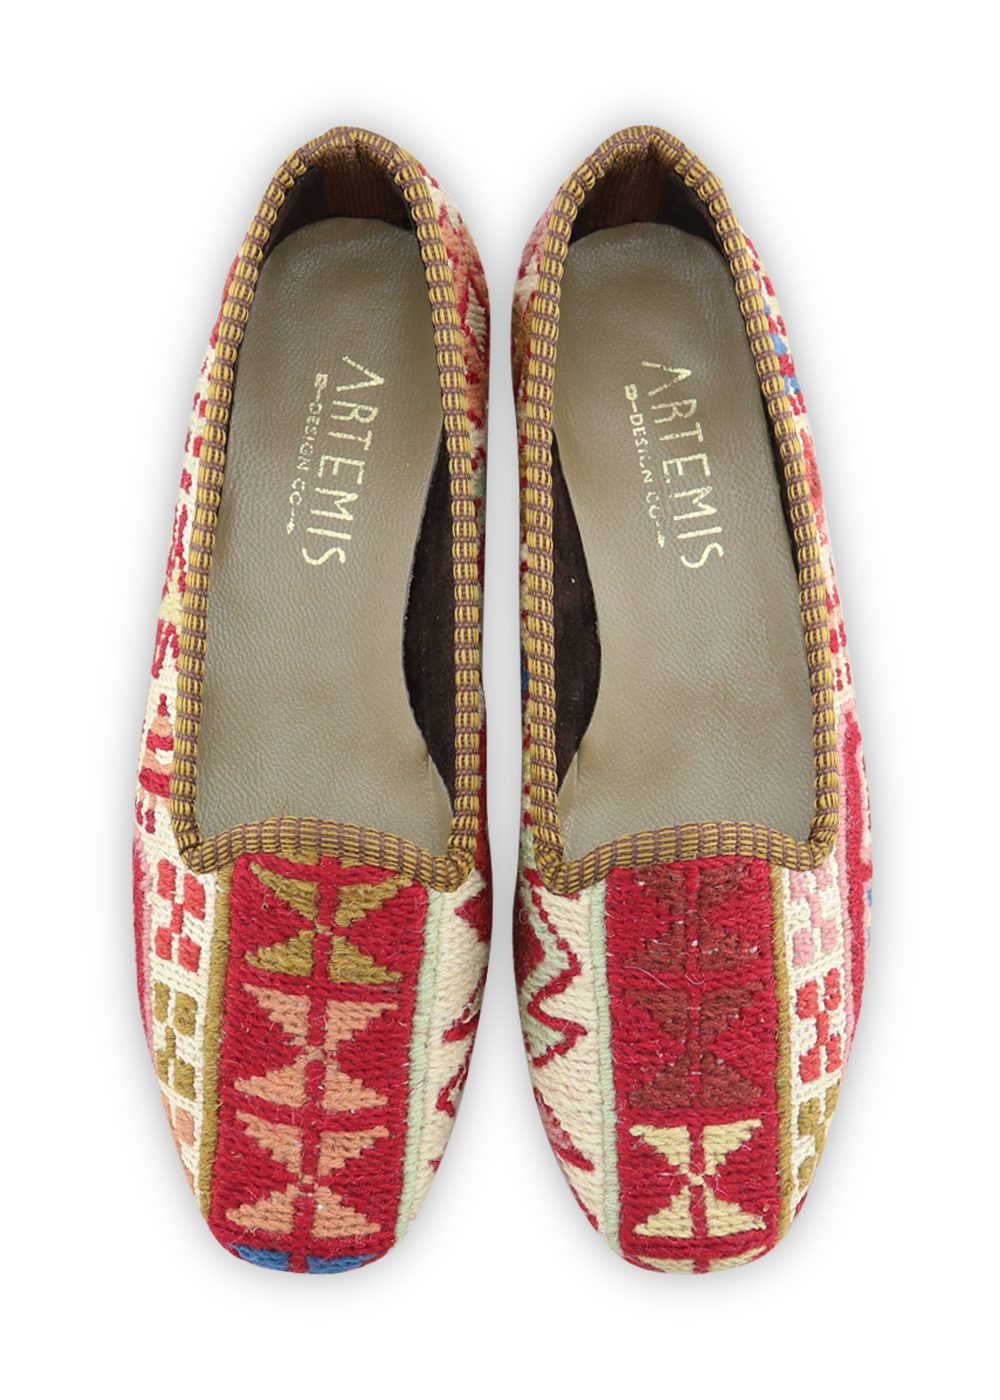 Women's Shoes - Women's Sumak Kilim Loafers - Size 36